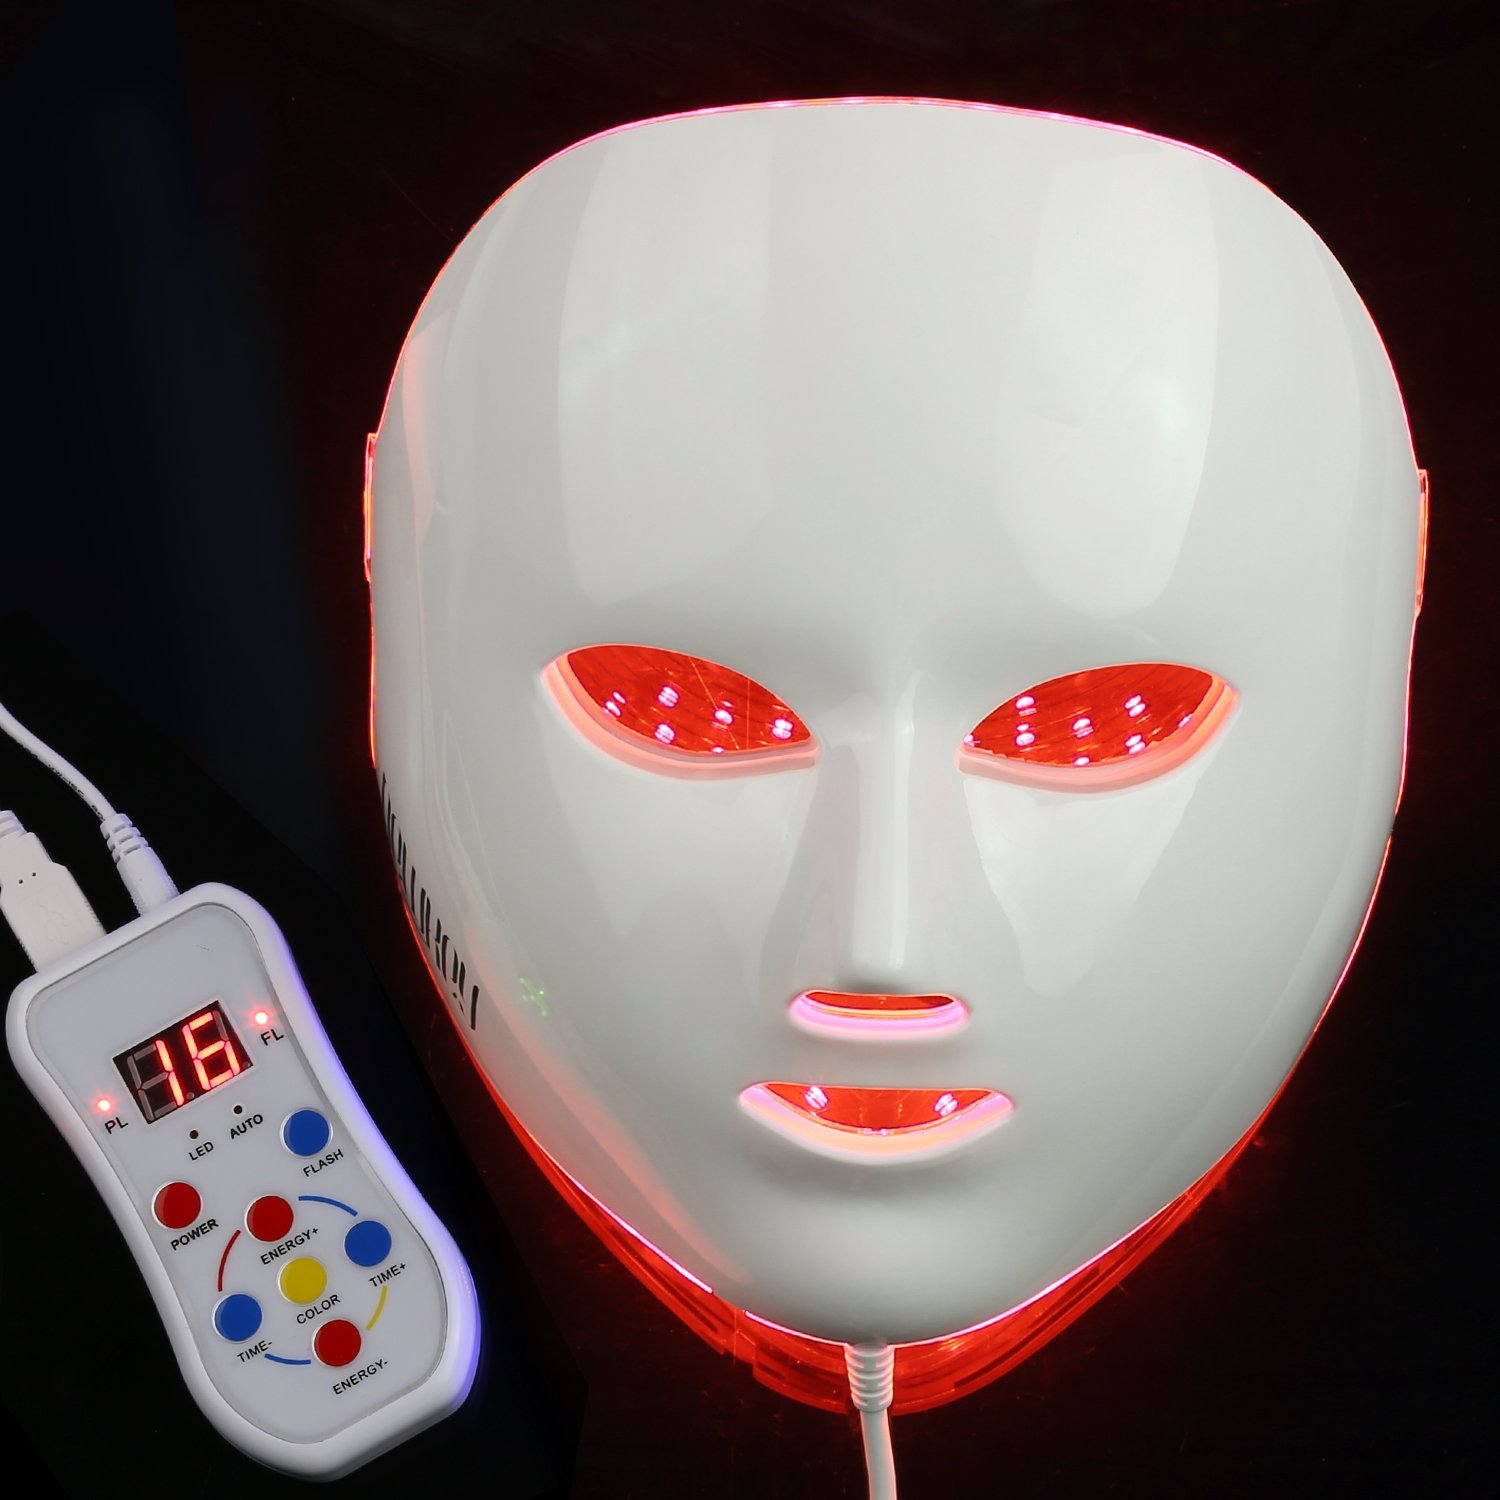 NEWKEY LED Photon Light Therapy Facial Mask Professional Anti Aging Skin Care Device for Face Whitening and Smooth - 1 YEAR WARRANTY by NEWKEY (Image #2)